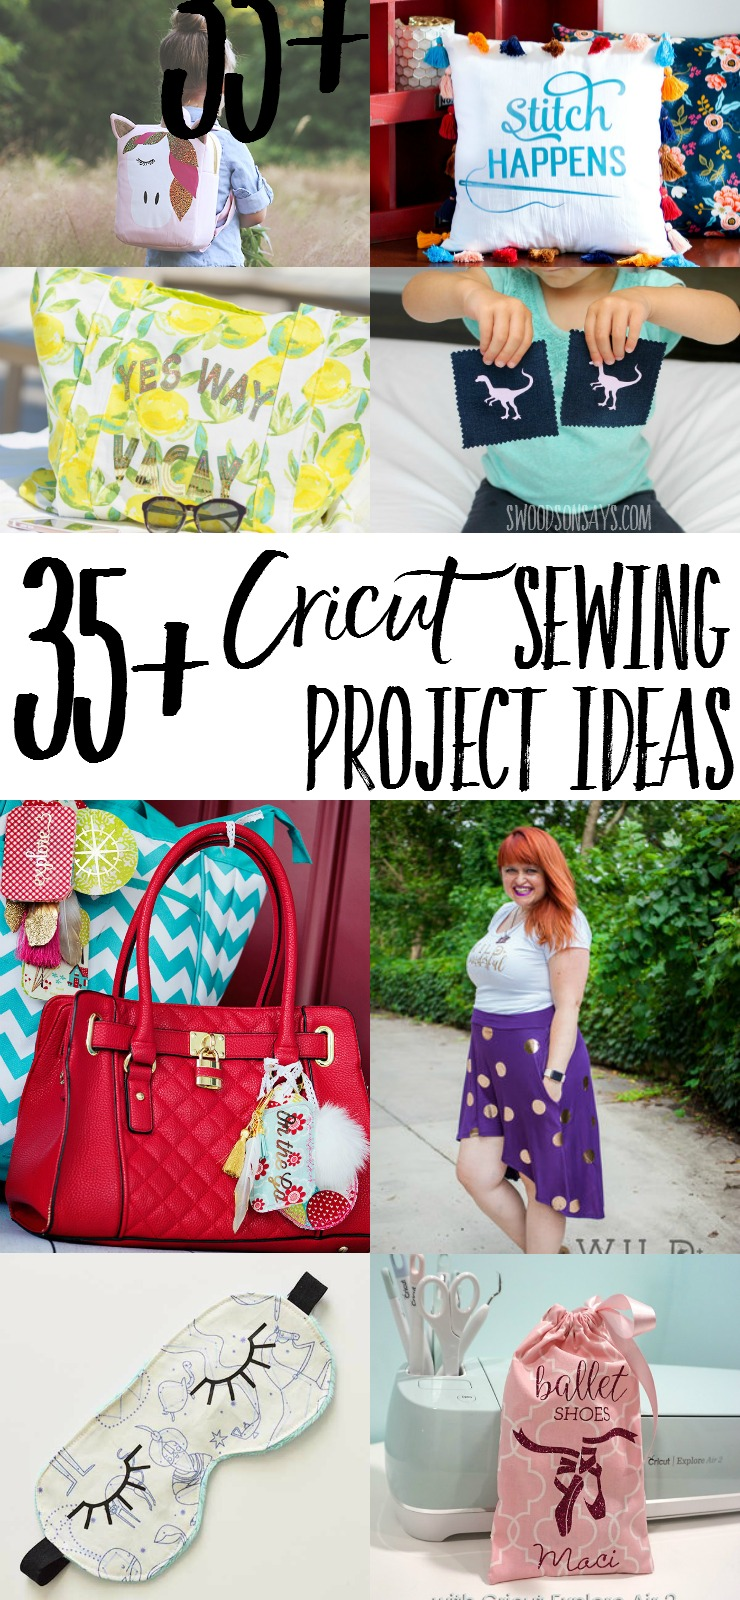 Cricuts aren't just for paper crafts, check out how you can use your Cricut with fabric! Lots of sewing tutorials and inspiration for using your Cricut to embellish and create projects.